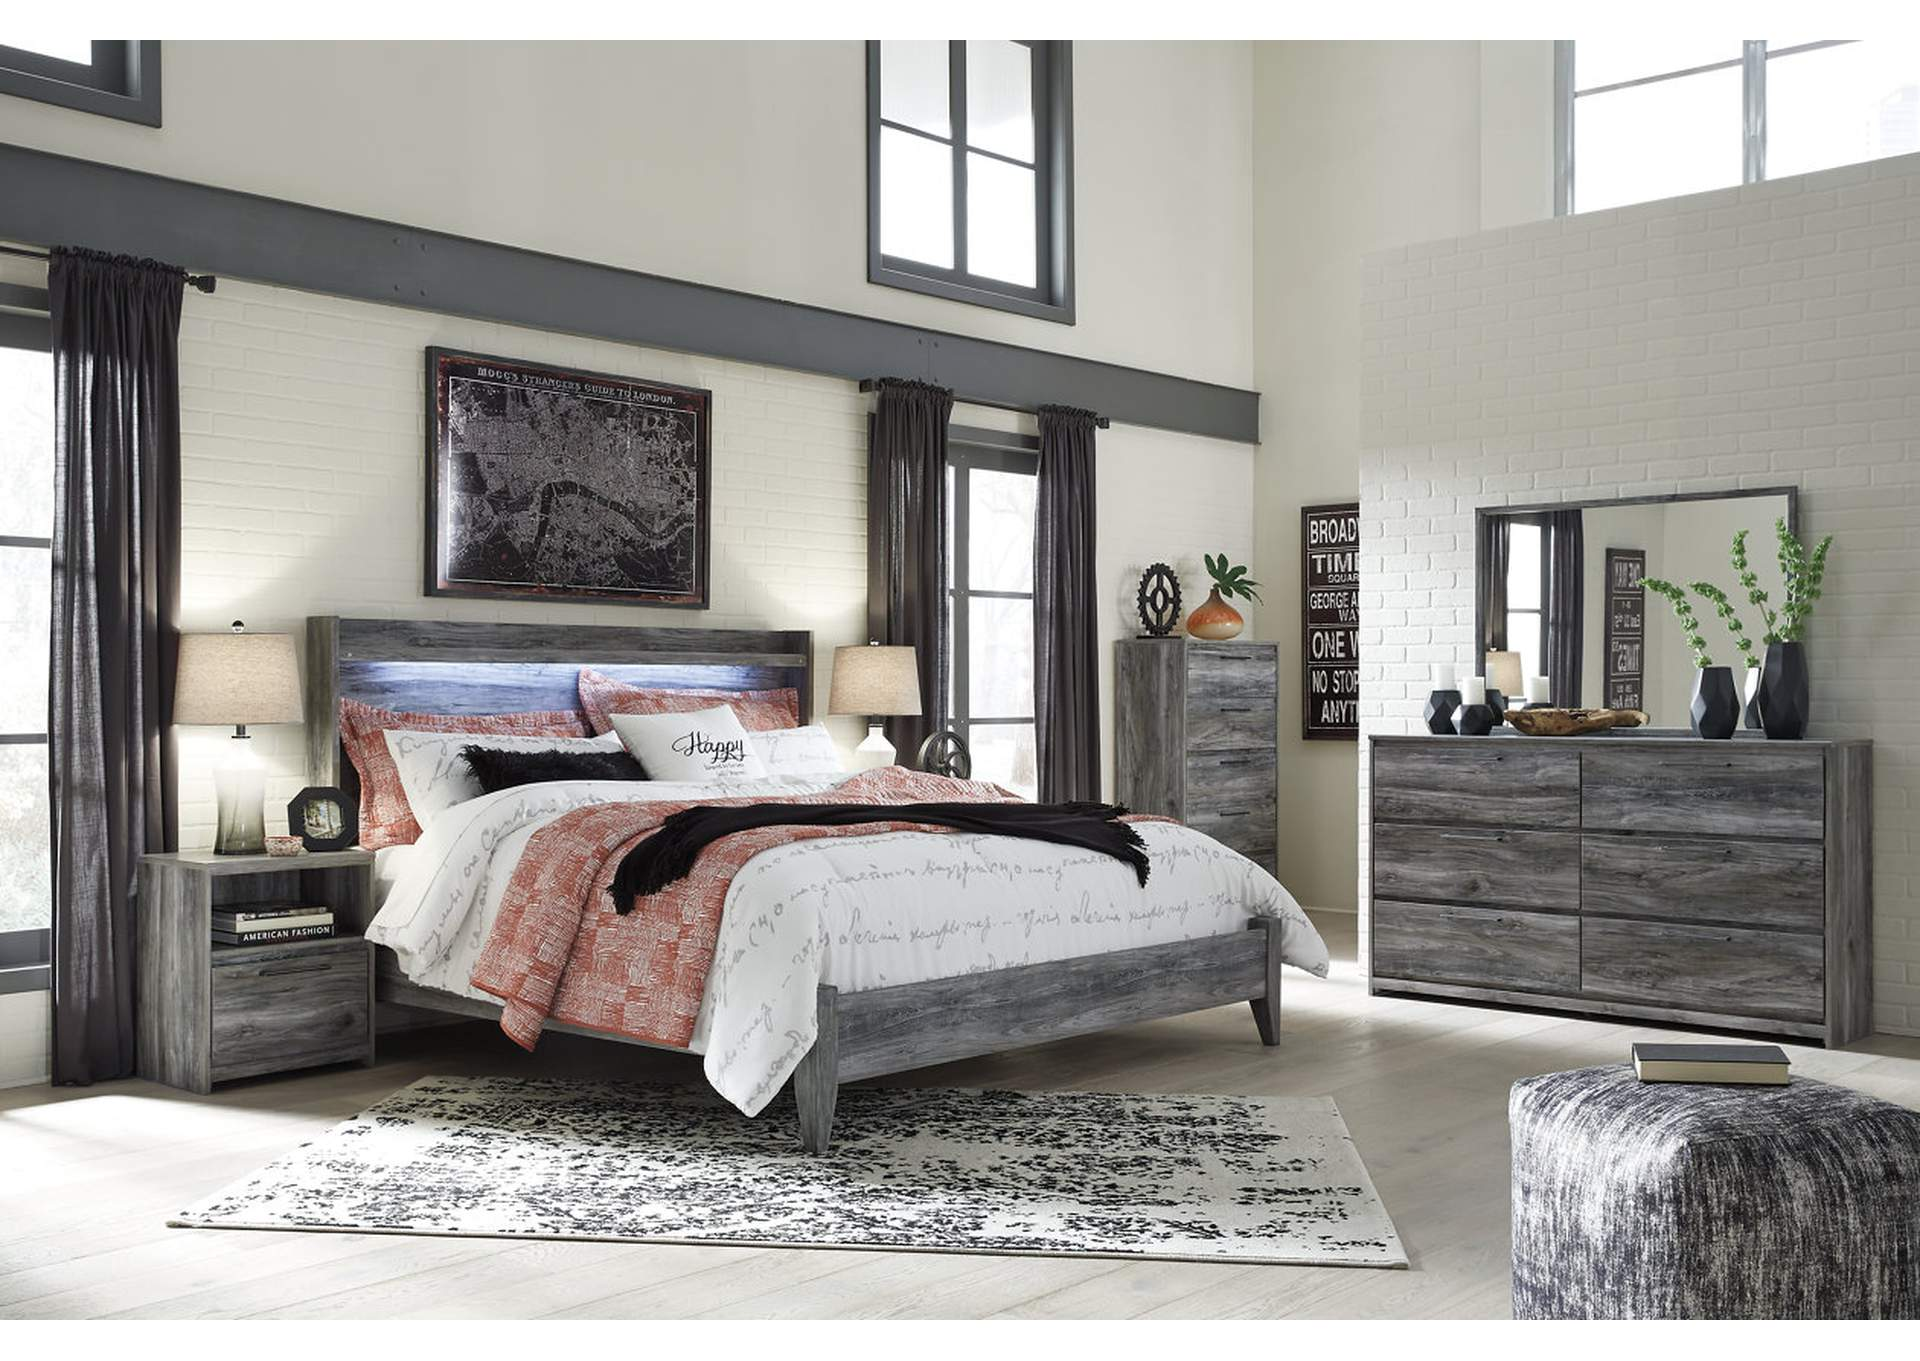 Baystorm Gray King Panel Bed w/Dresser, Mirror, Drawer Chest and Nightstand,Signature Design By Ashley